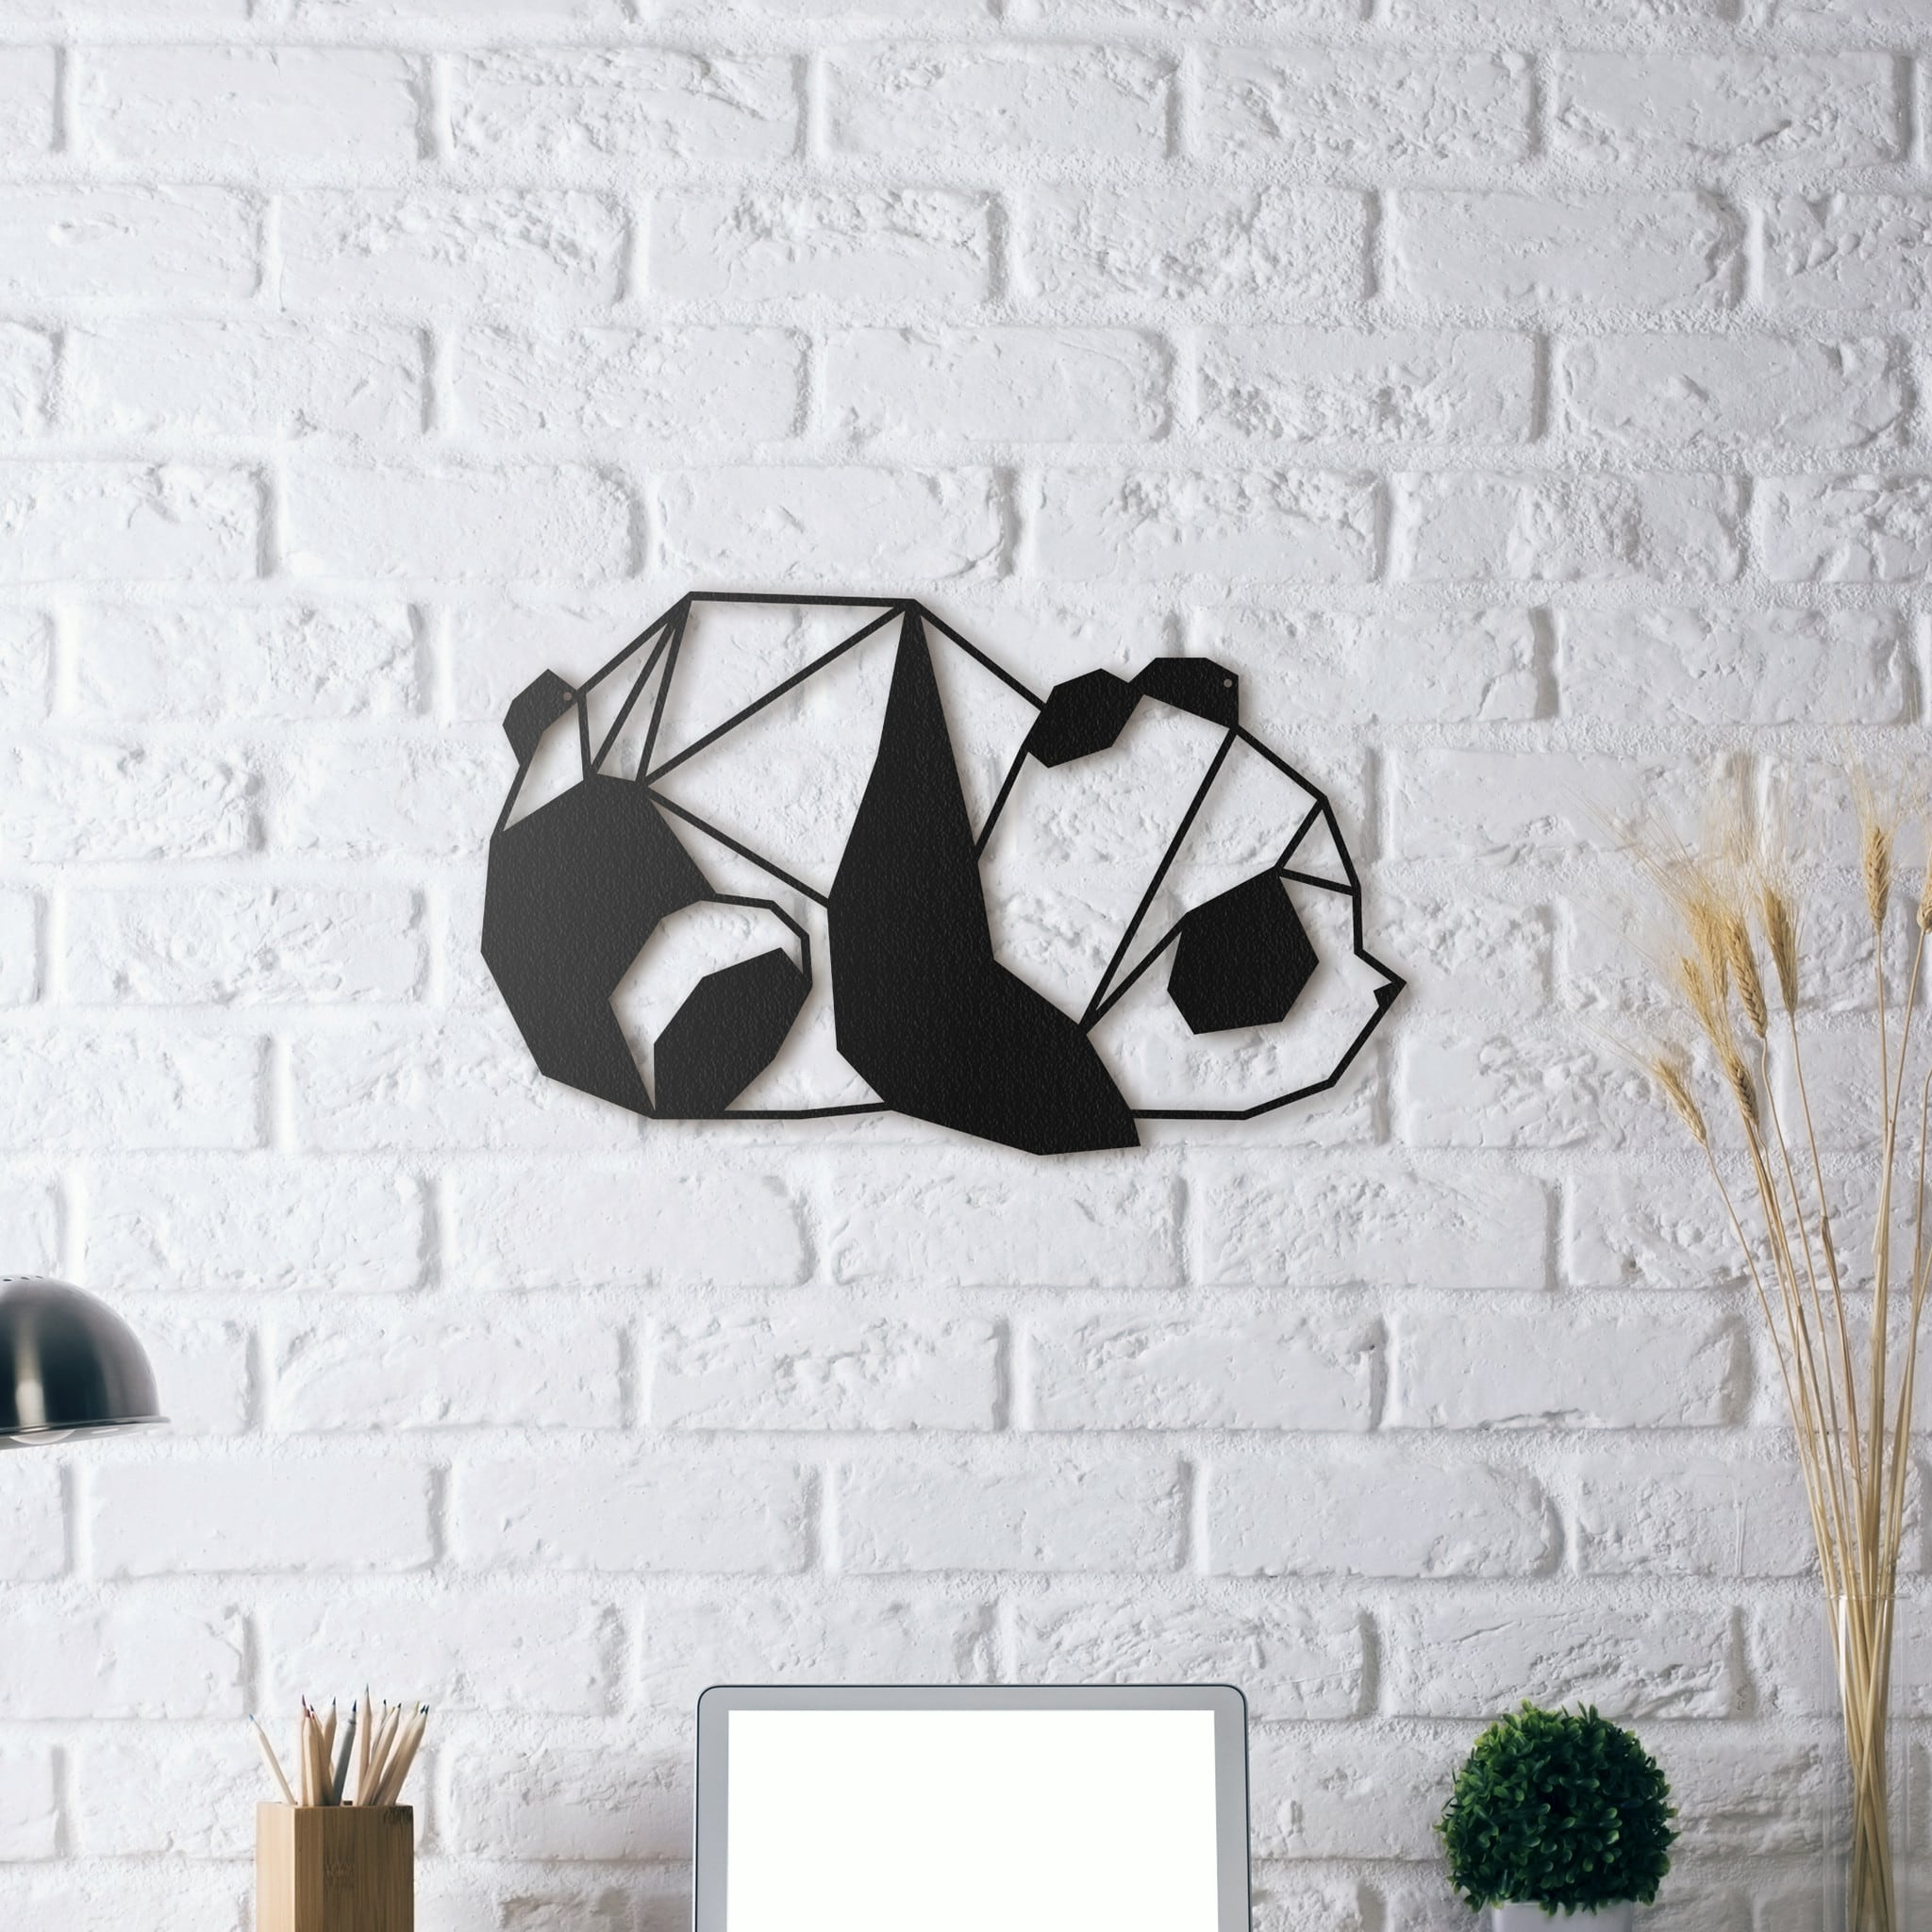 Deco murale m tallique for 3 suisses decoration murale